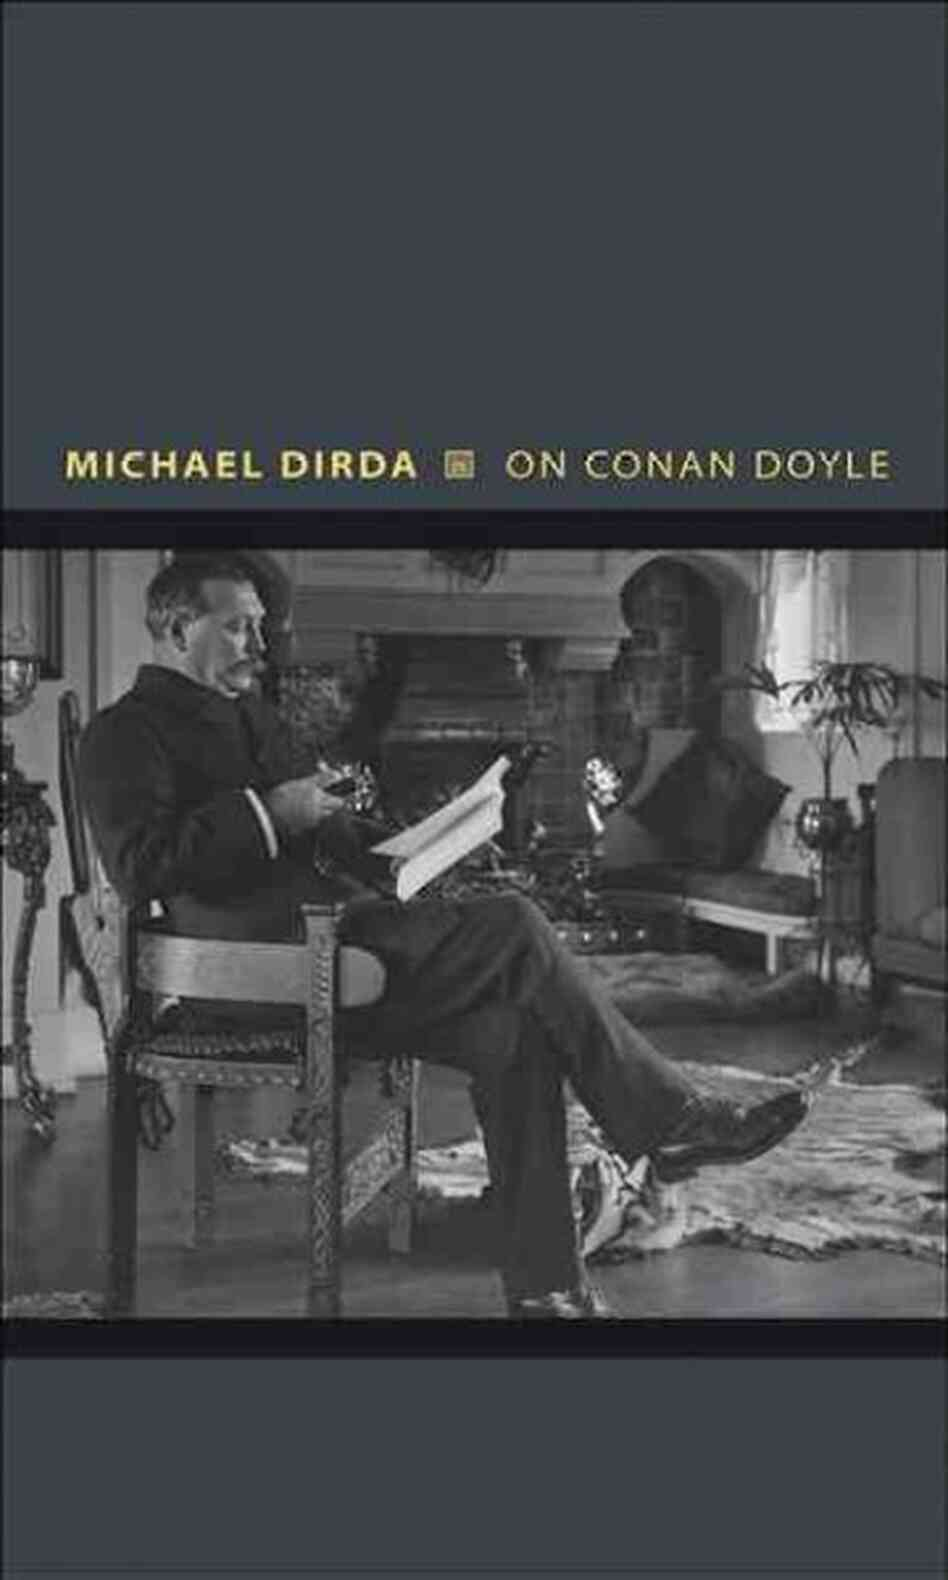 On Conan Doyle